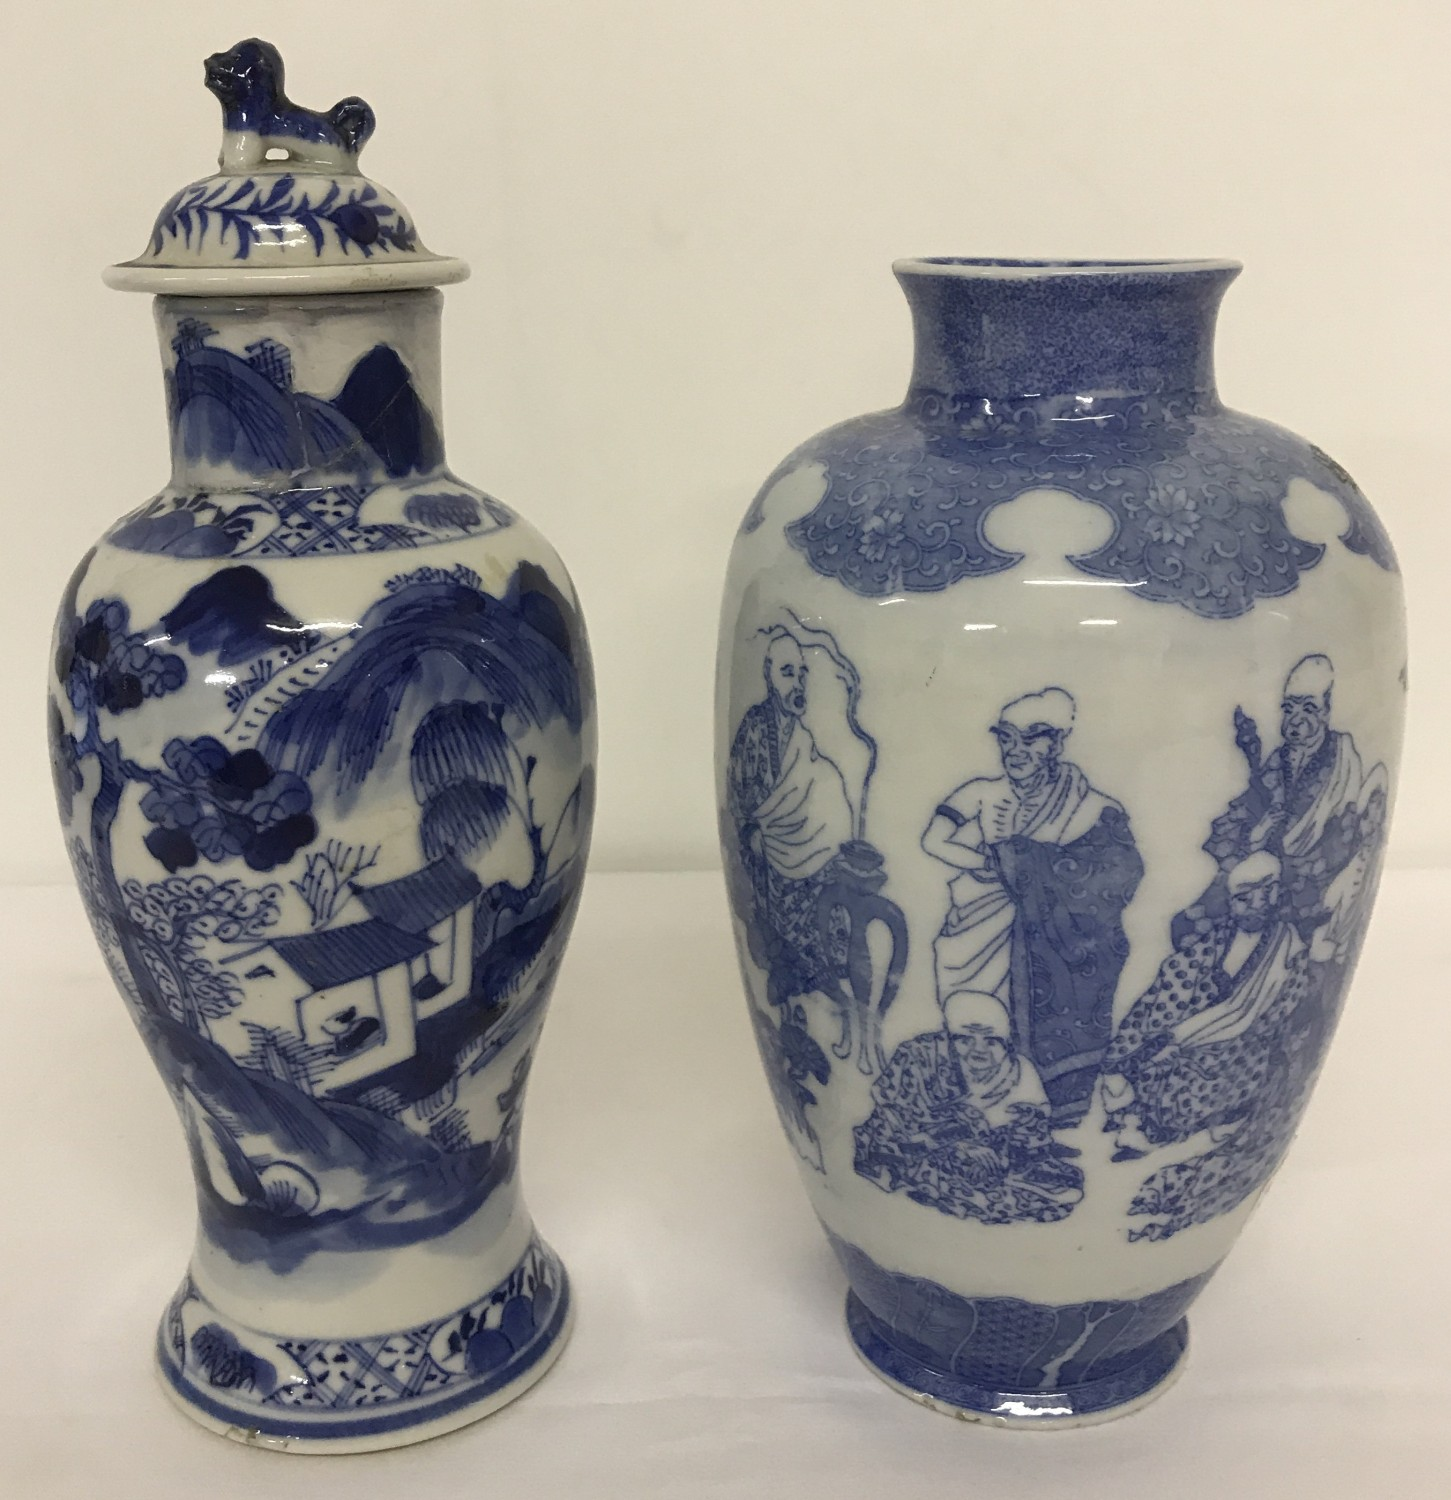 Lot 82 - 2 pieces of Chinese blue and white ceramics.